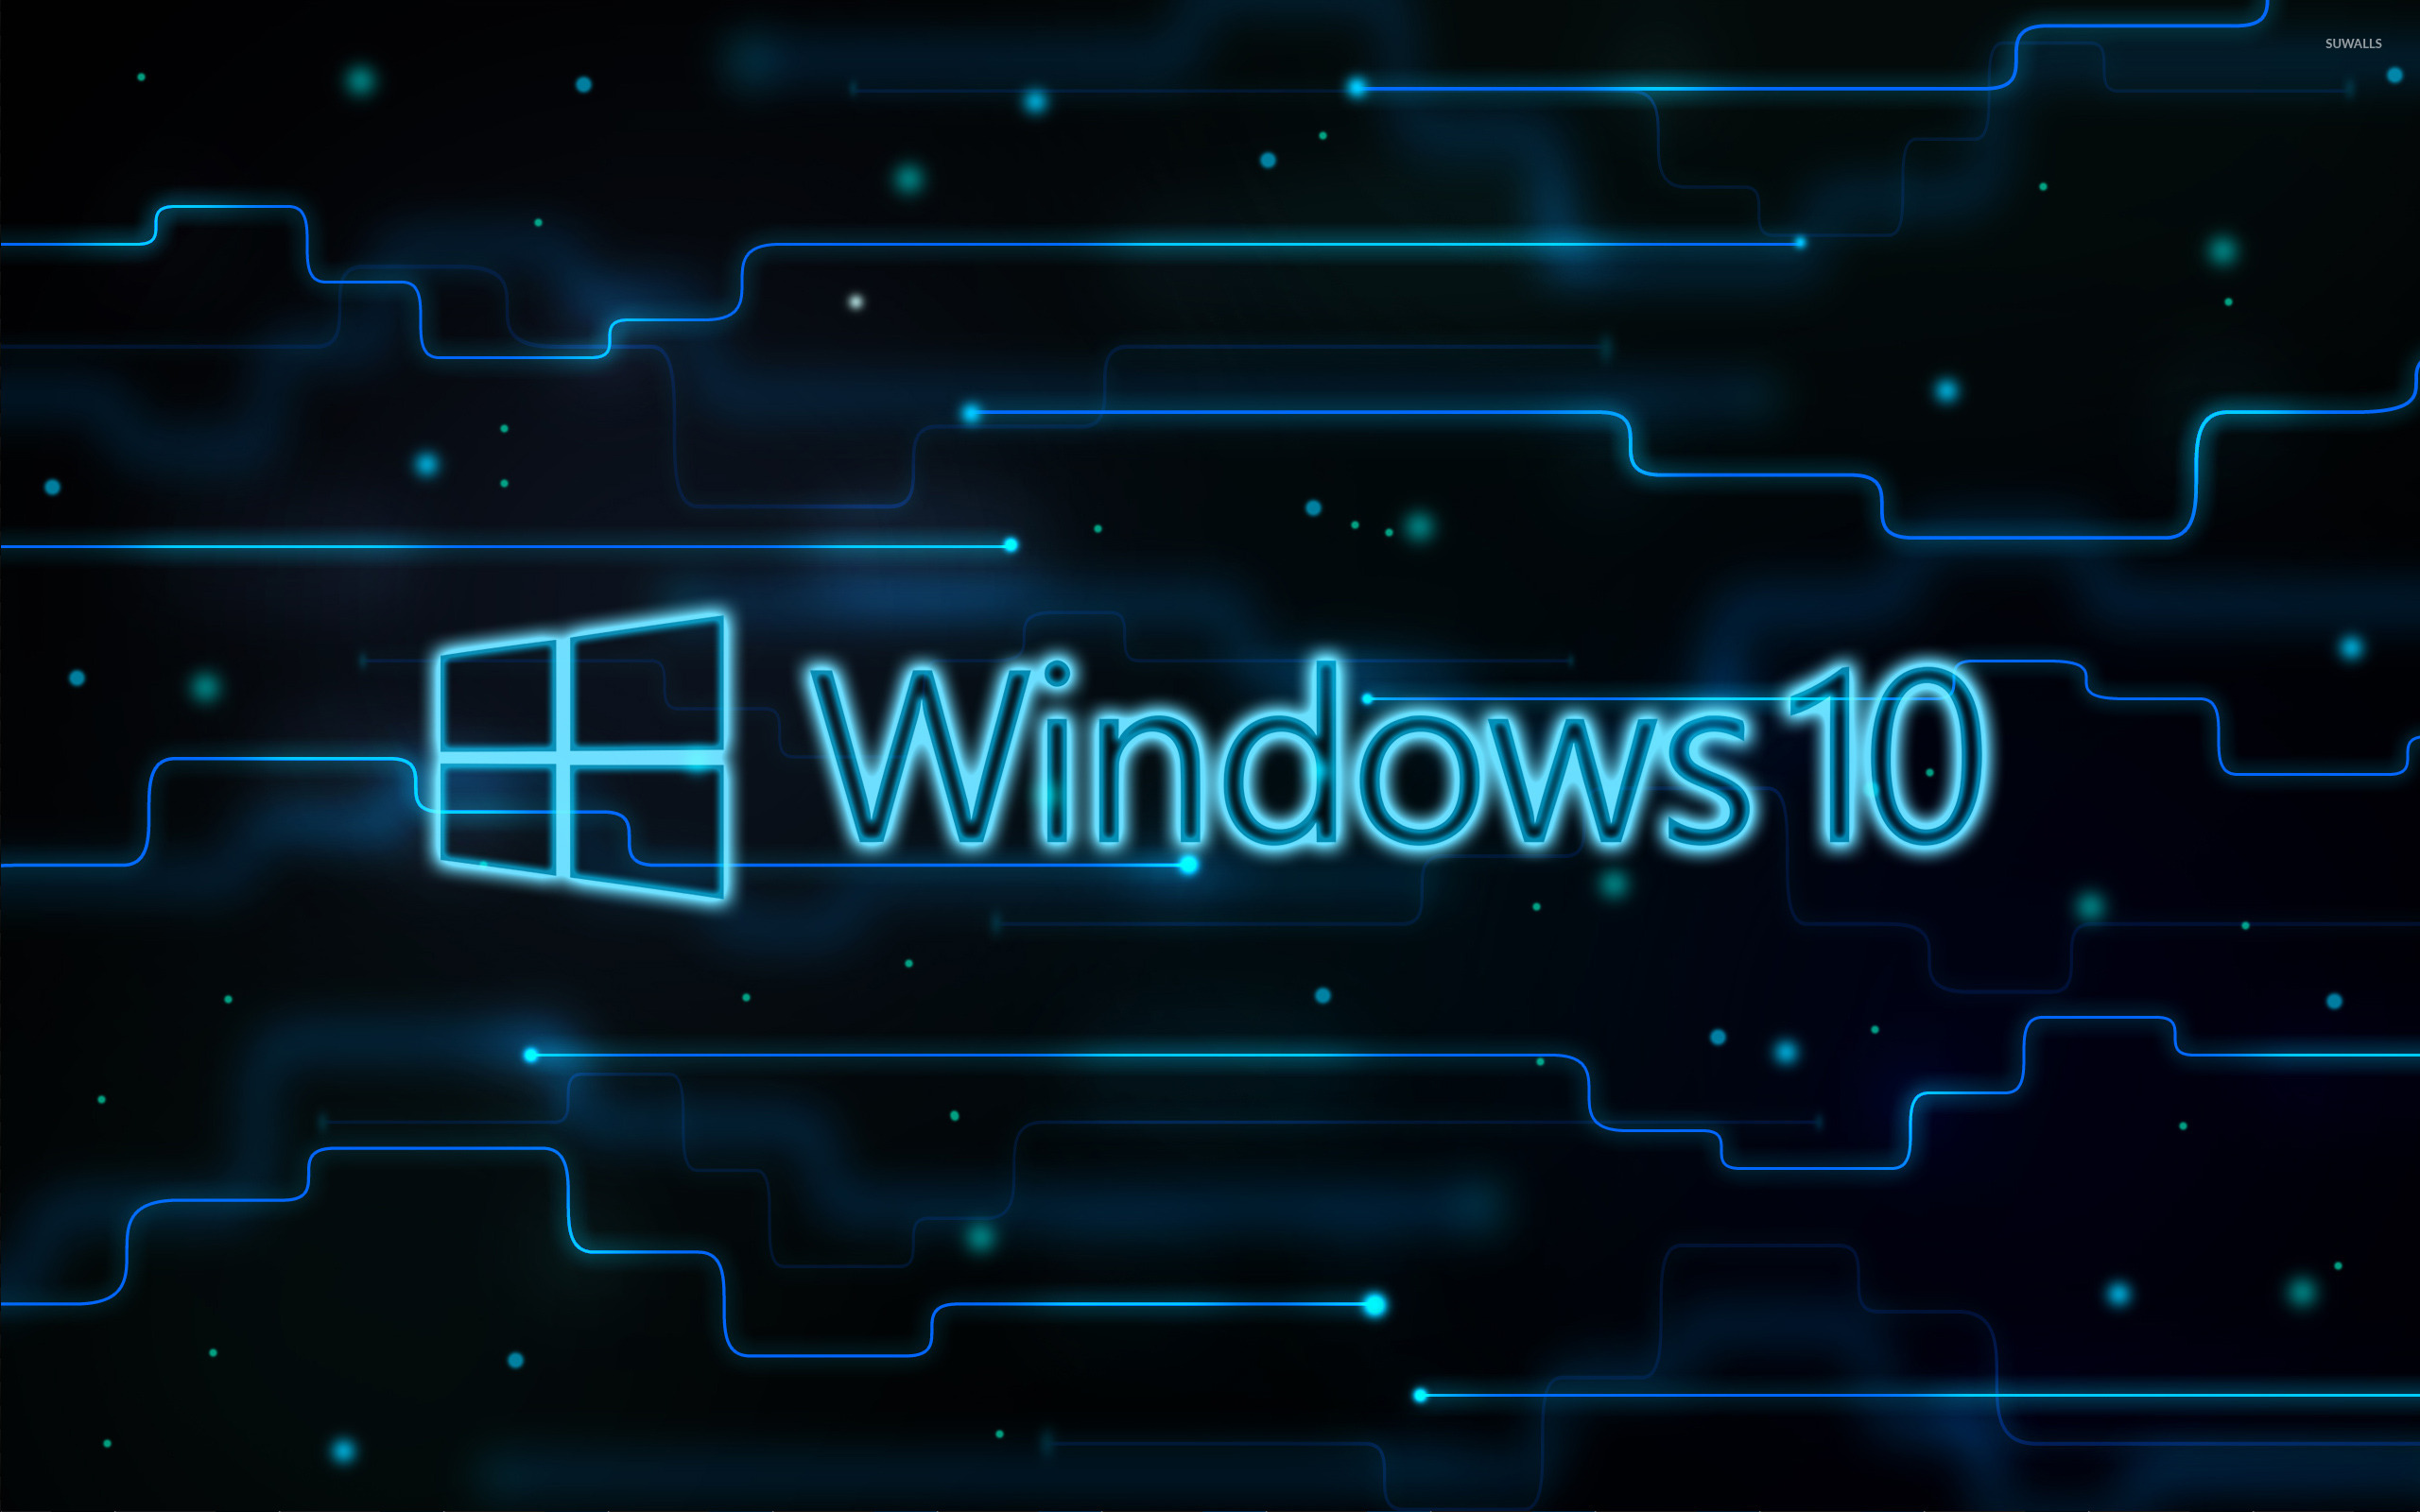 Windows 10 Glowing Logo On A Network Wallpaper Computer